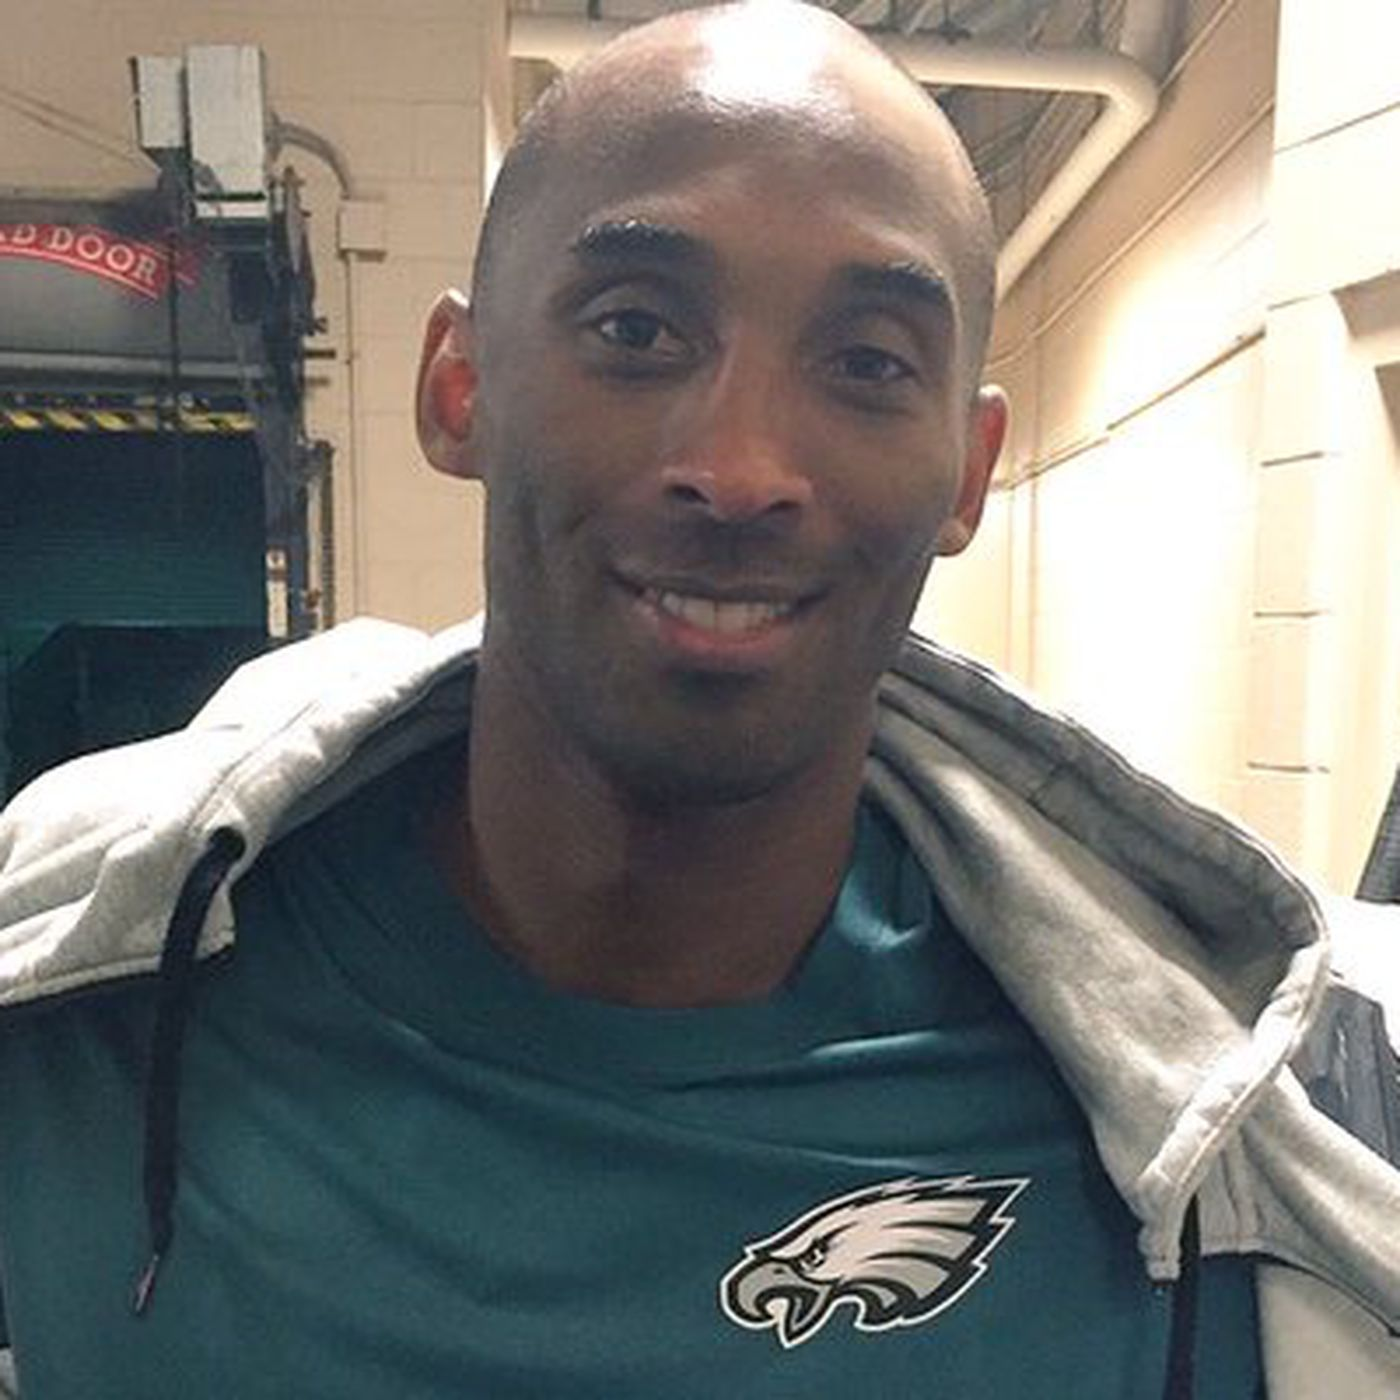 6f6120c1b1d Kobe Bryant left Philadelphia wearing an Eagles shirt after the Lakers-Sixers  game - Bleeding Green Nation